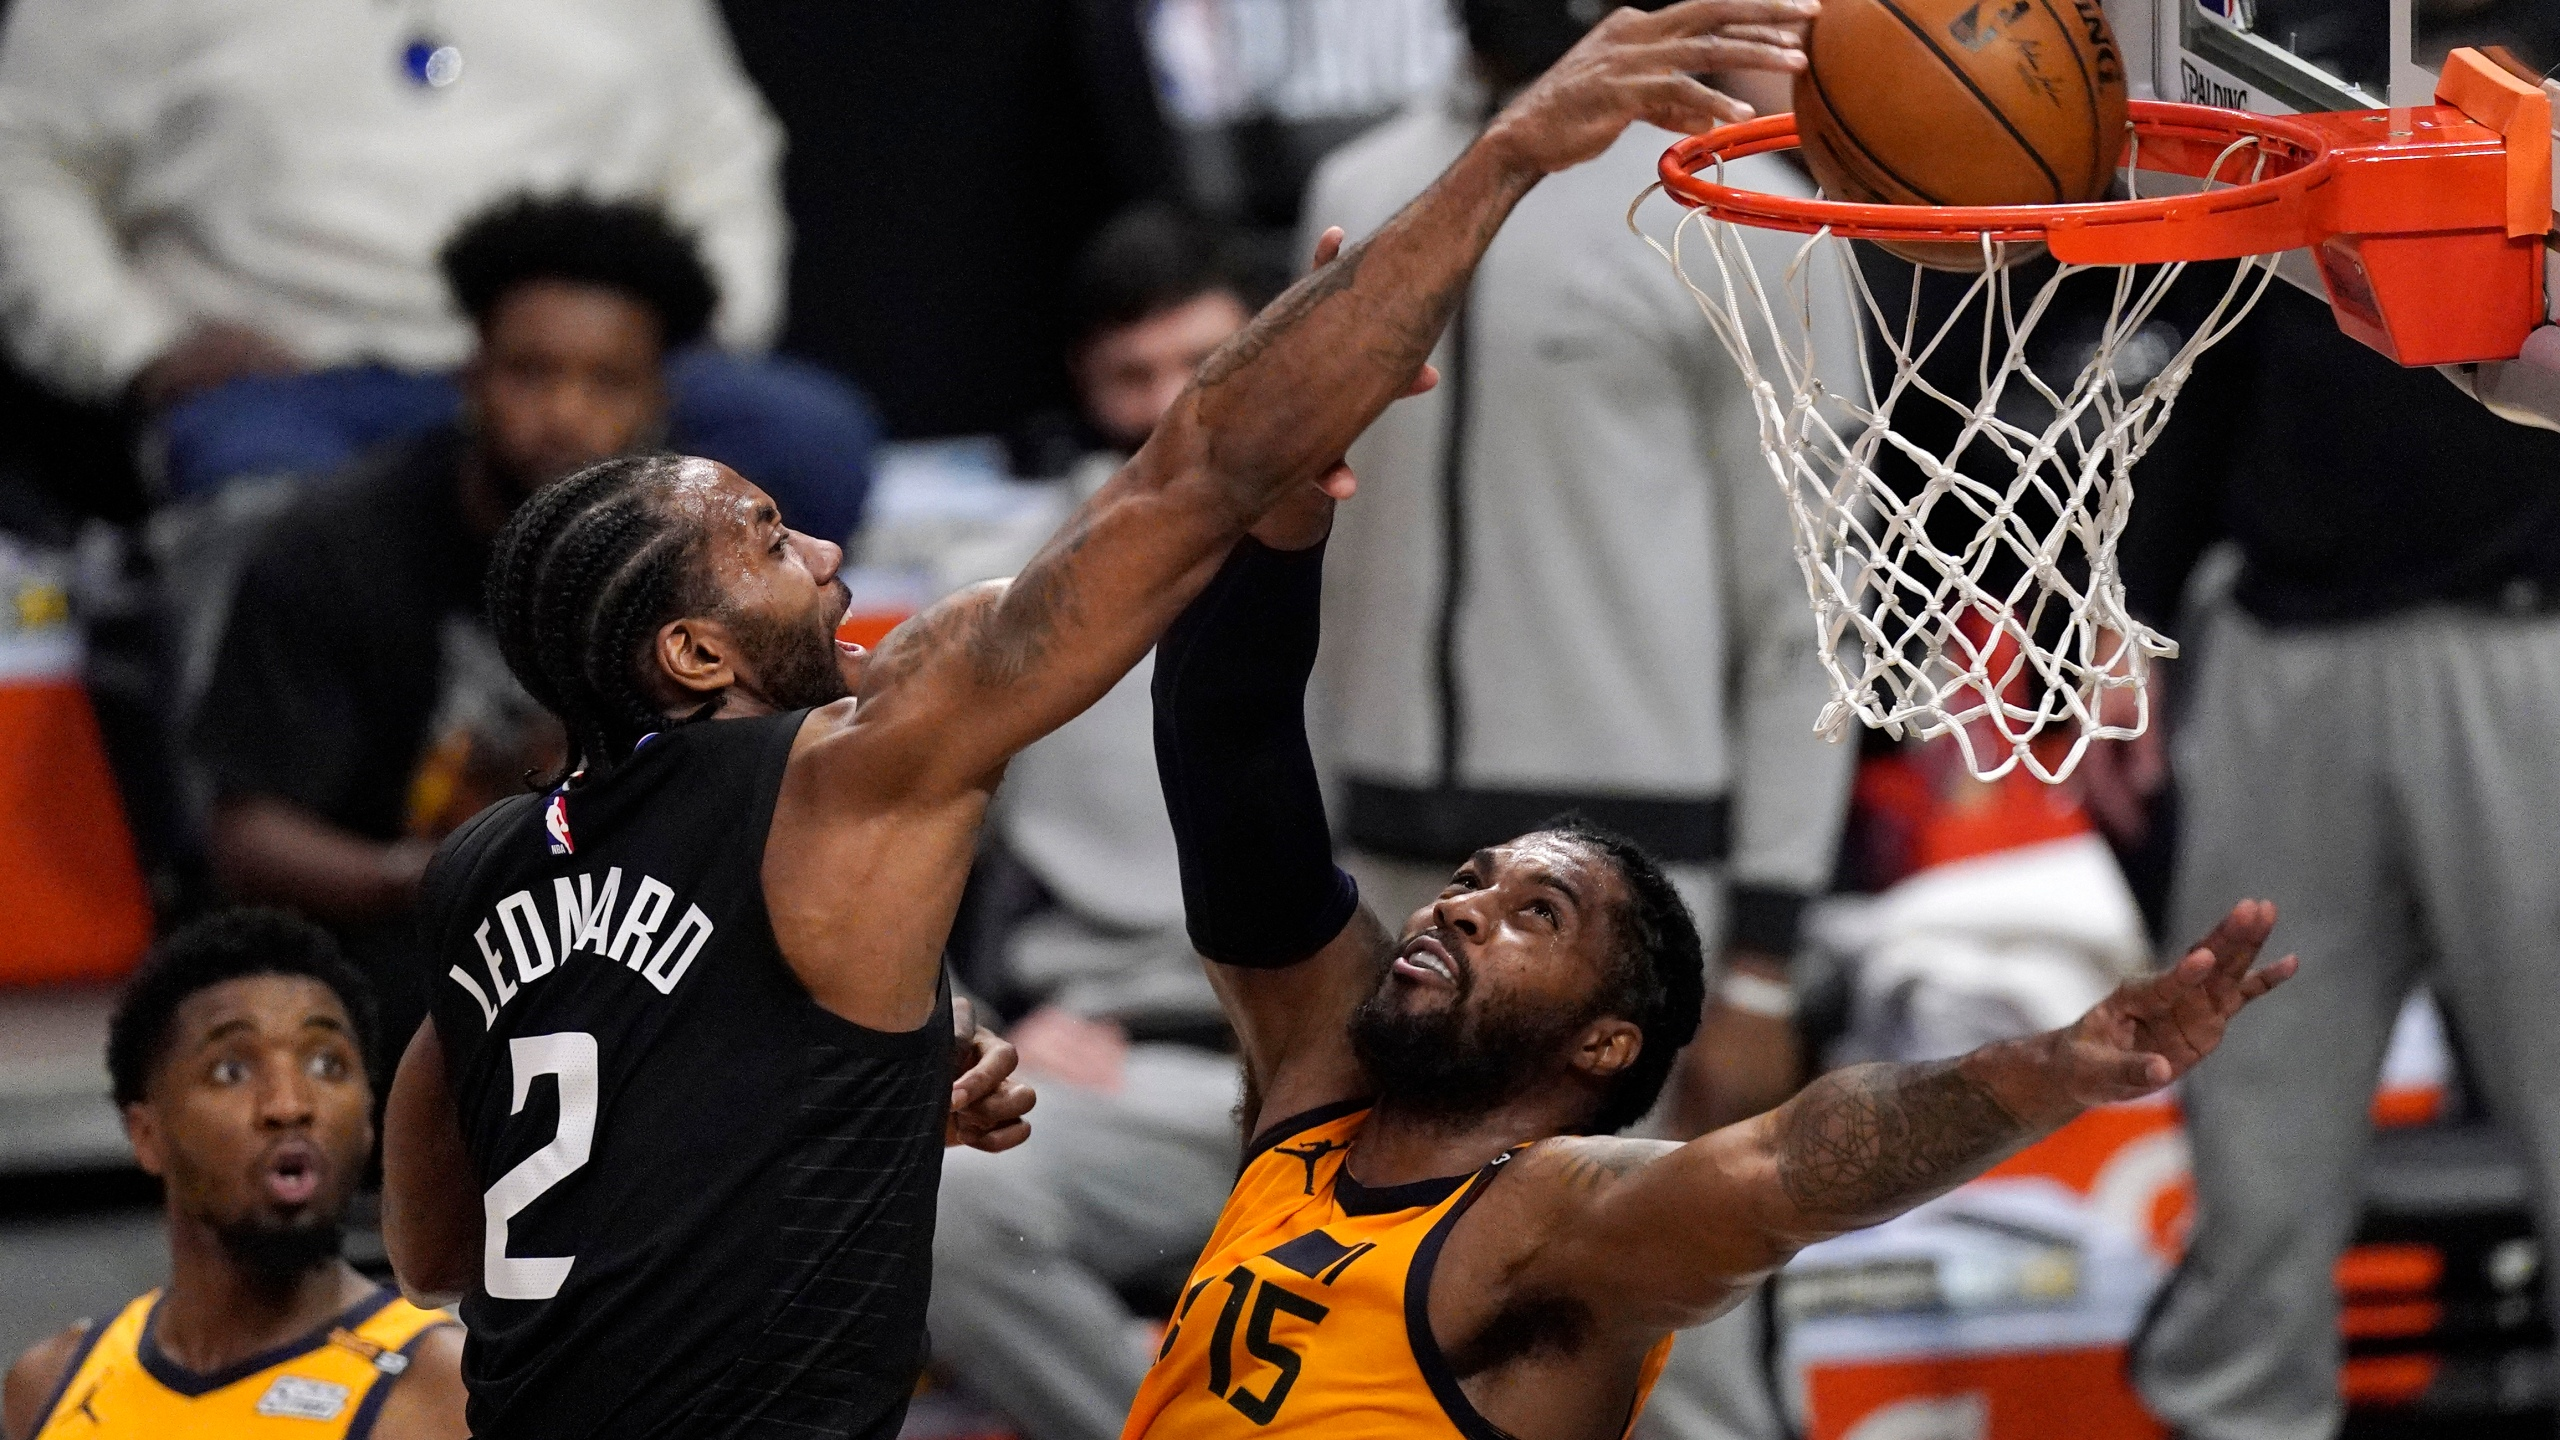 Los Angeles Clippers forward Kawhi Leonard, center, dunks over Utah Jazz center Derrick Favors, right, as guard Donovan Mitchell watches during the first half in Game 4 of a second-round NBA basketball playoff series on June 14, 2021, in Los Angeles. (Mark J. Terrill / Associated Press)